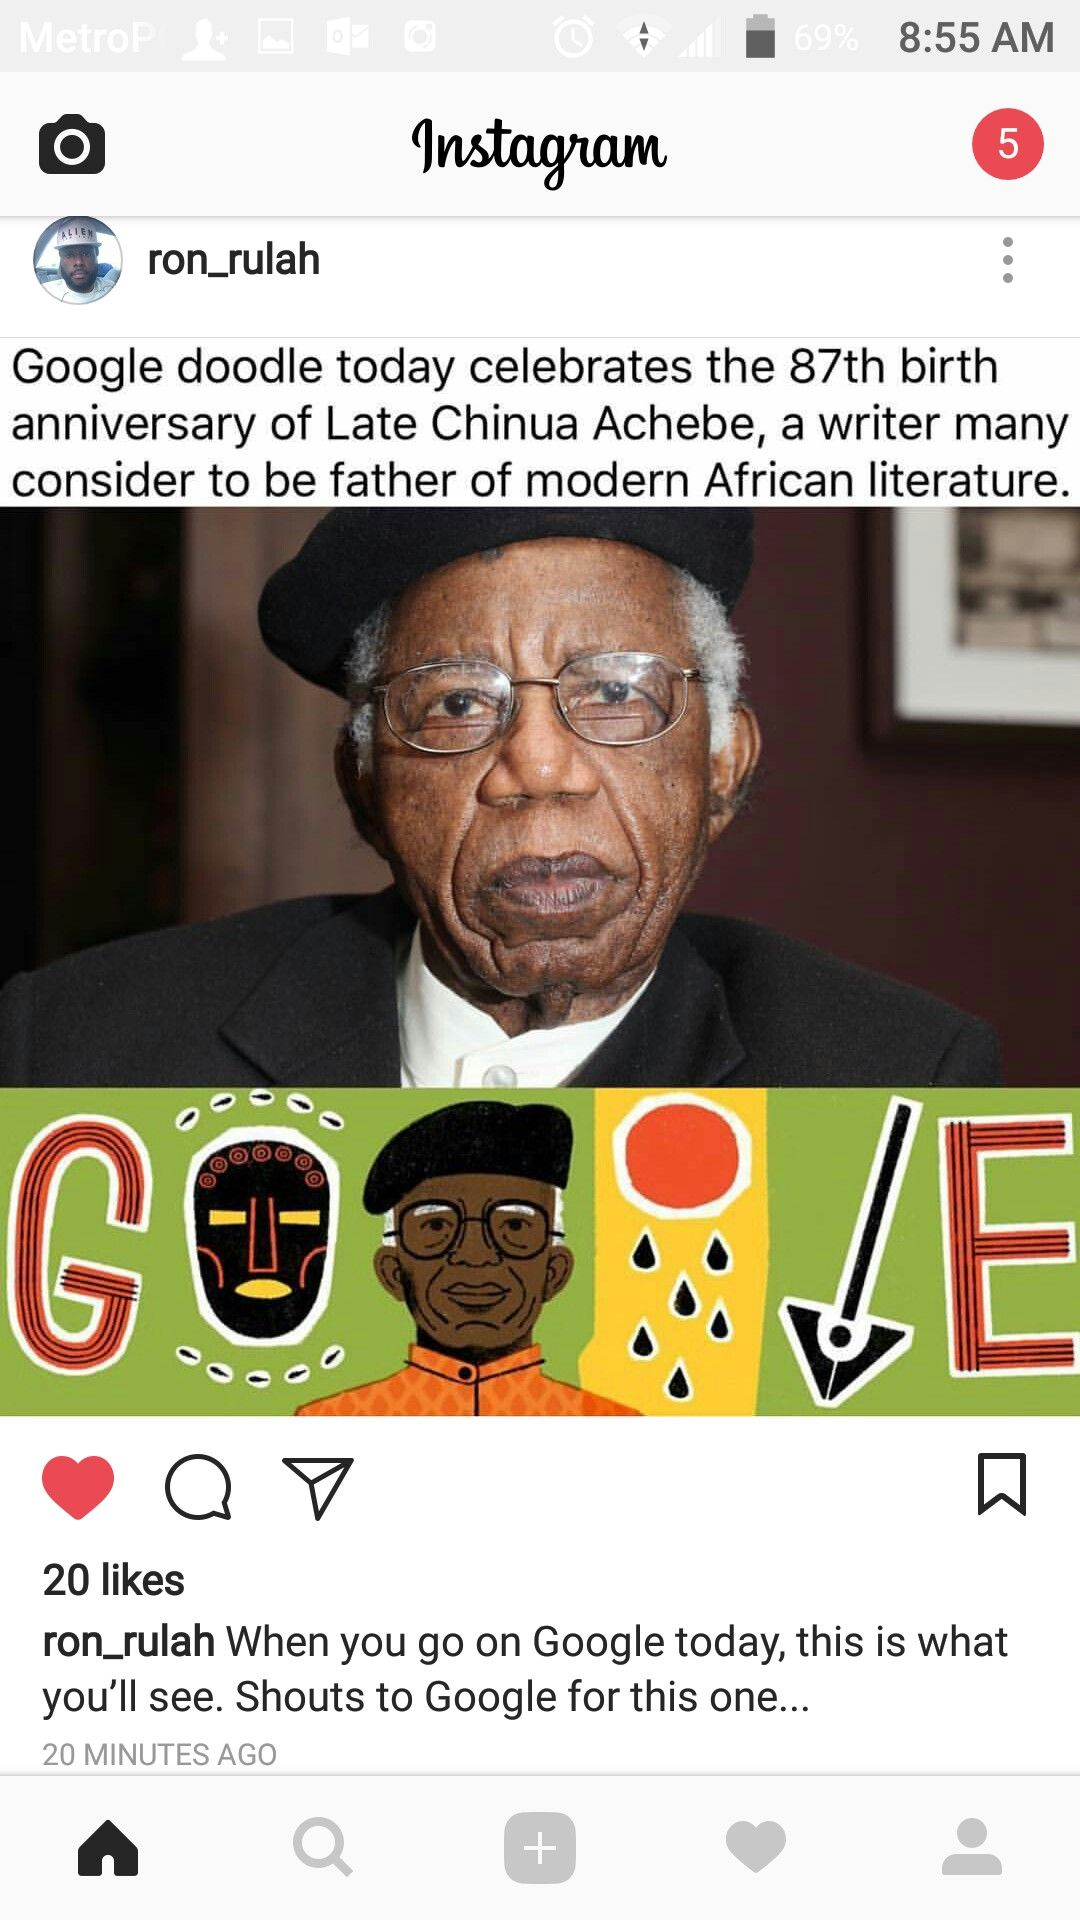 Chinua African literature, Google today, Google doodle today